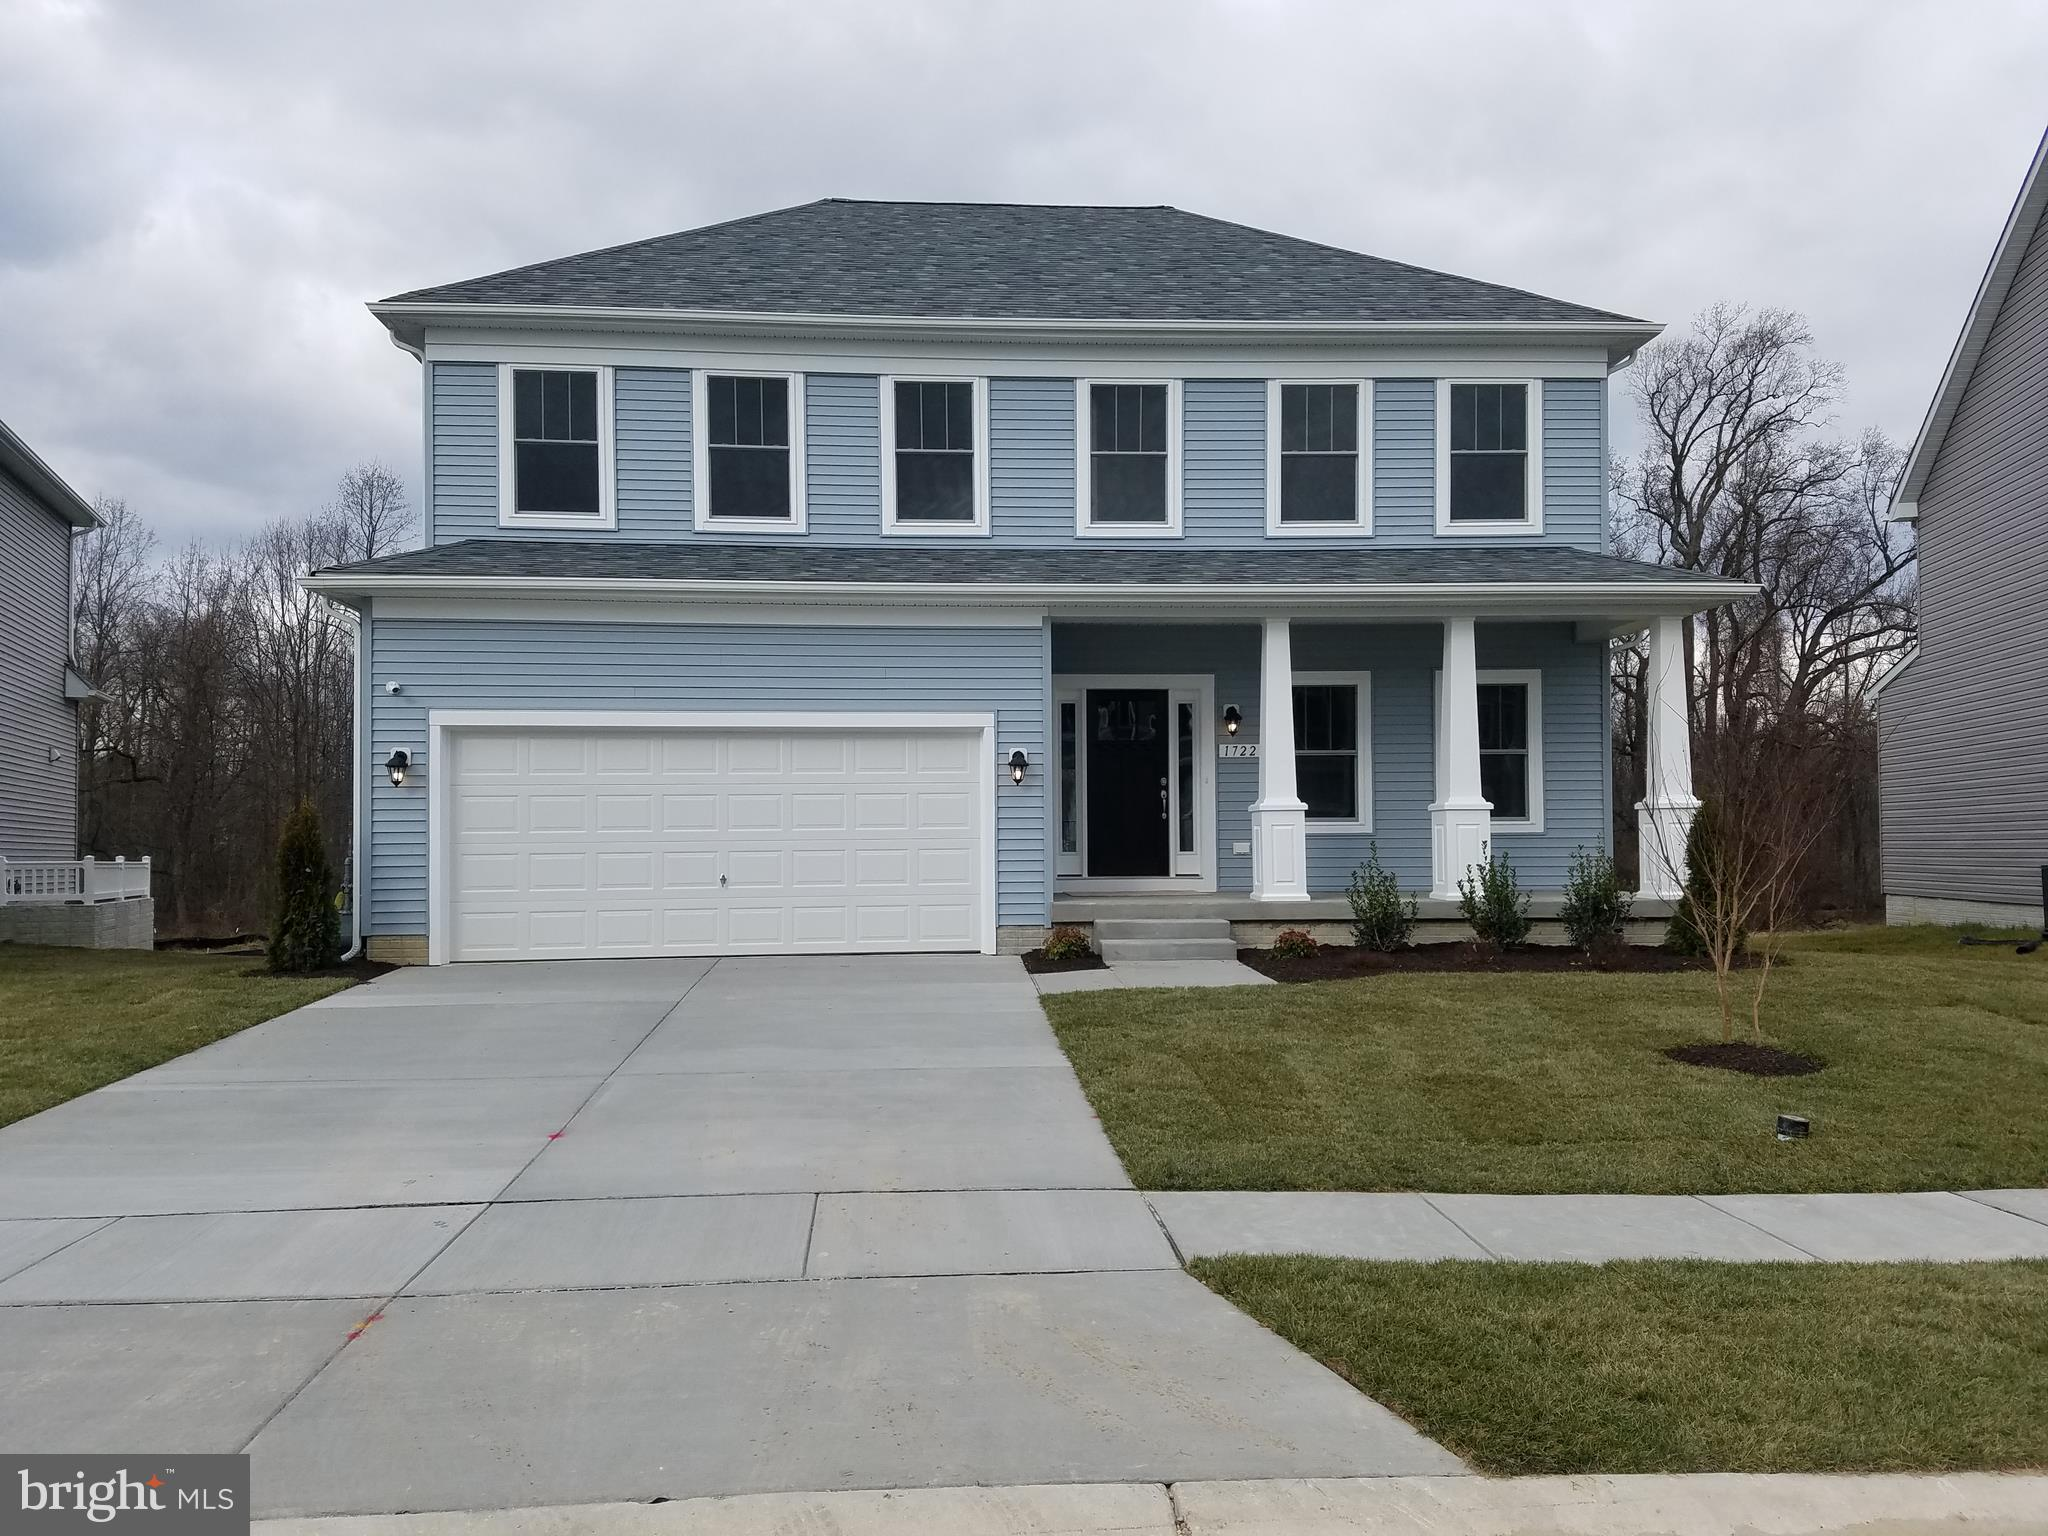 WESTOVER - TO-BE-BUILT.   Listing for description purposes only.  Baldwin Homes Westover floorplan a